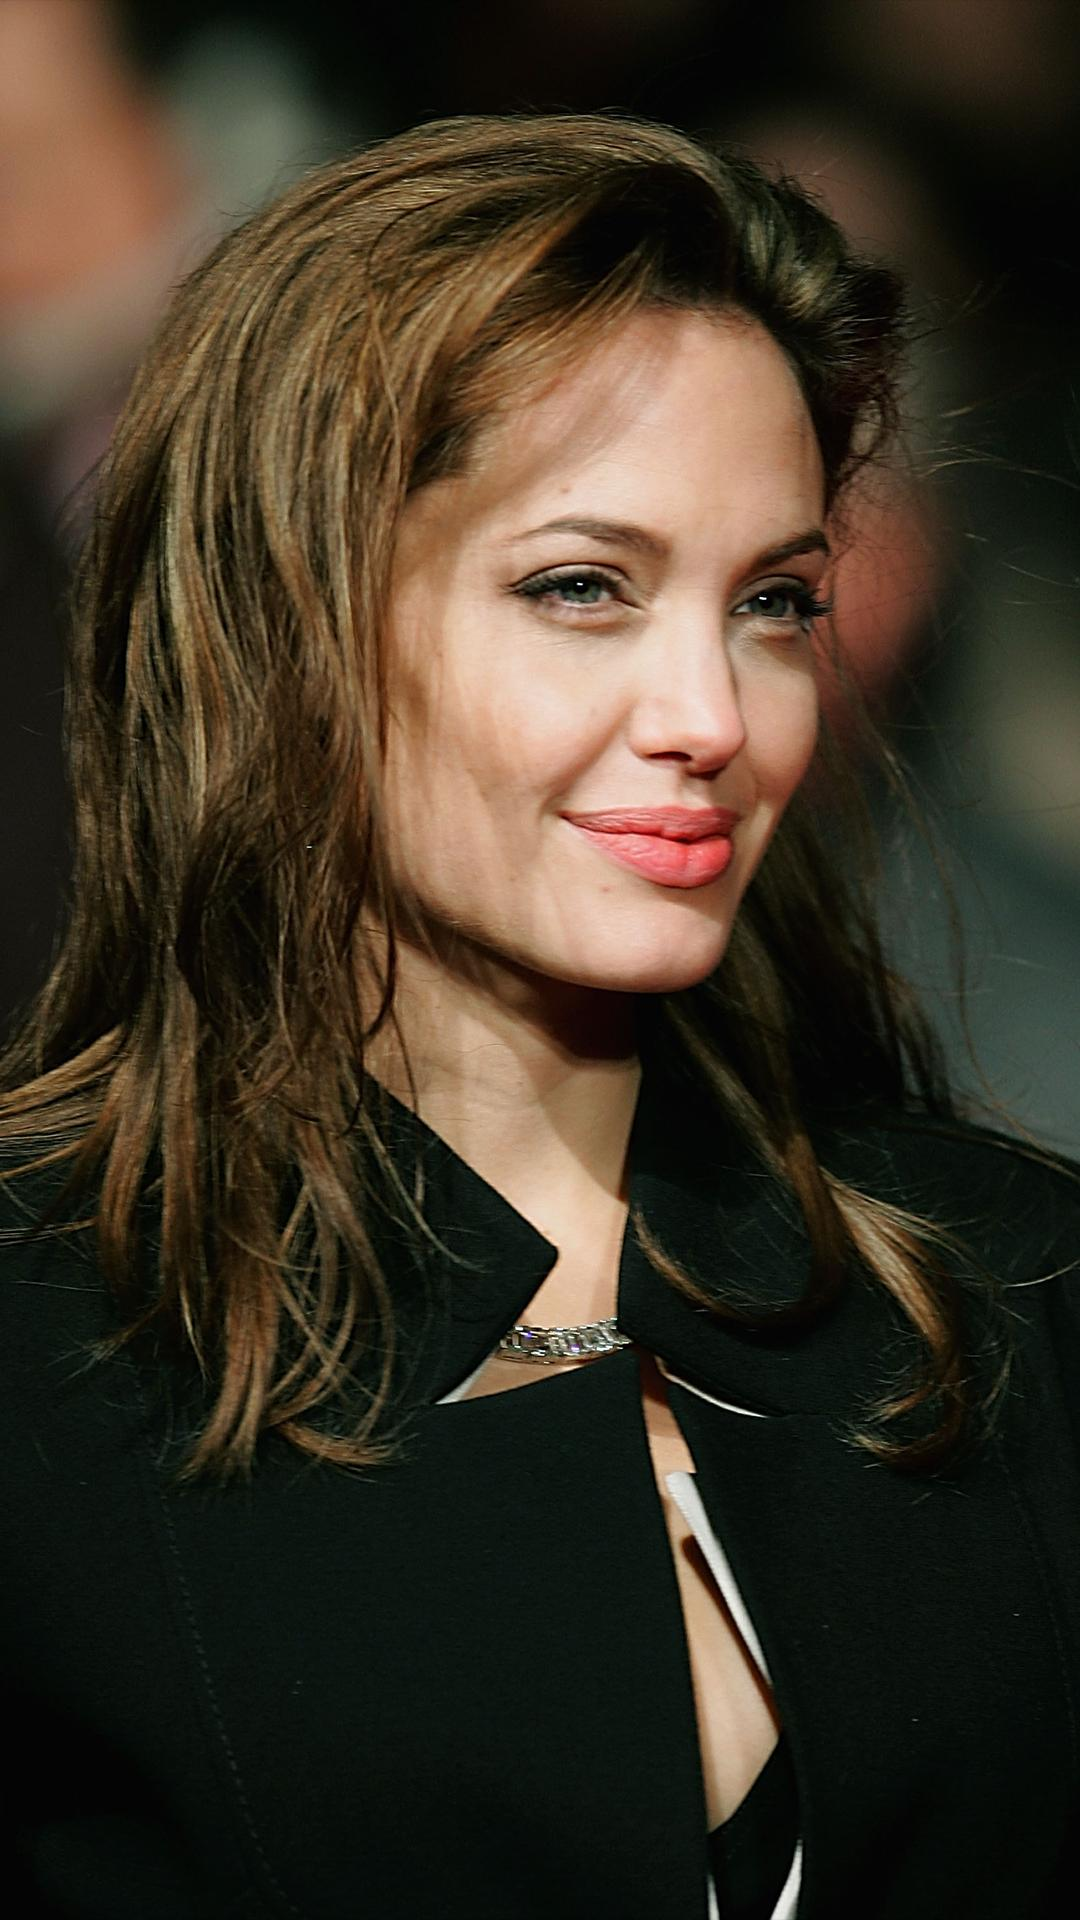 Angelina Jolie Cyborg 2 1993 angelina jolie hd photos for android - apk download